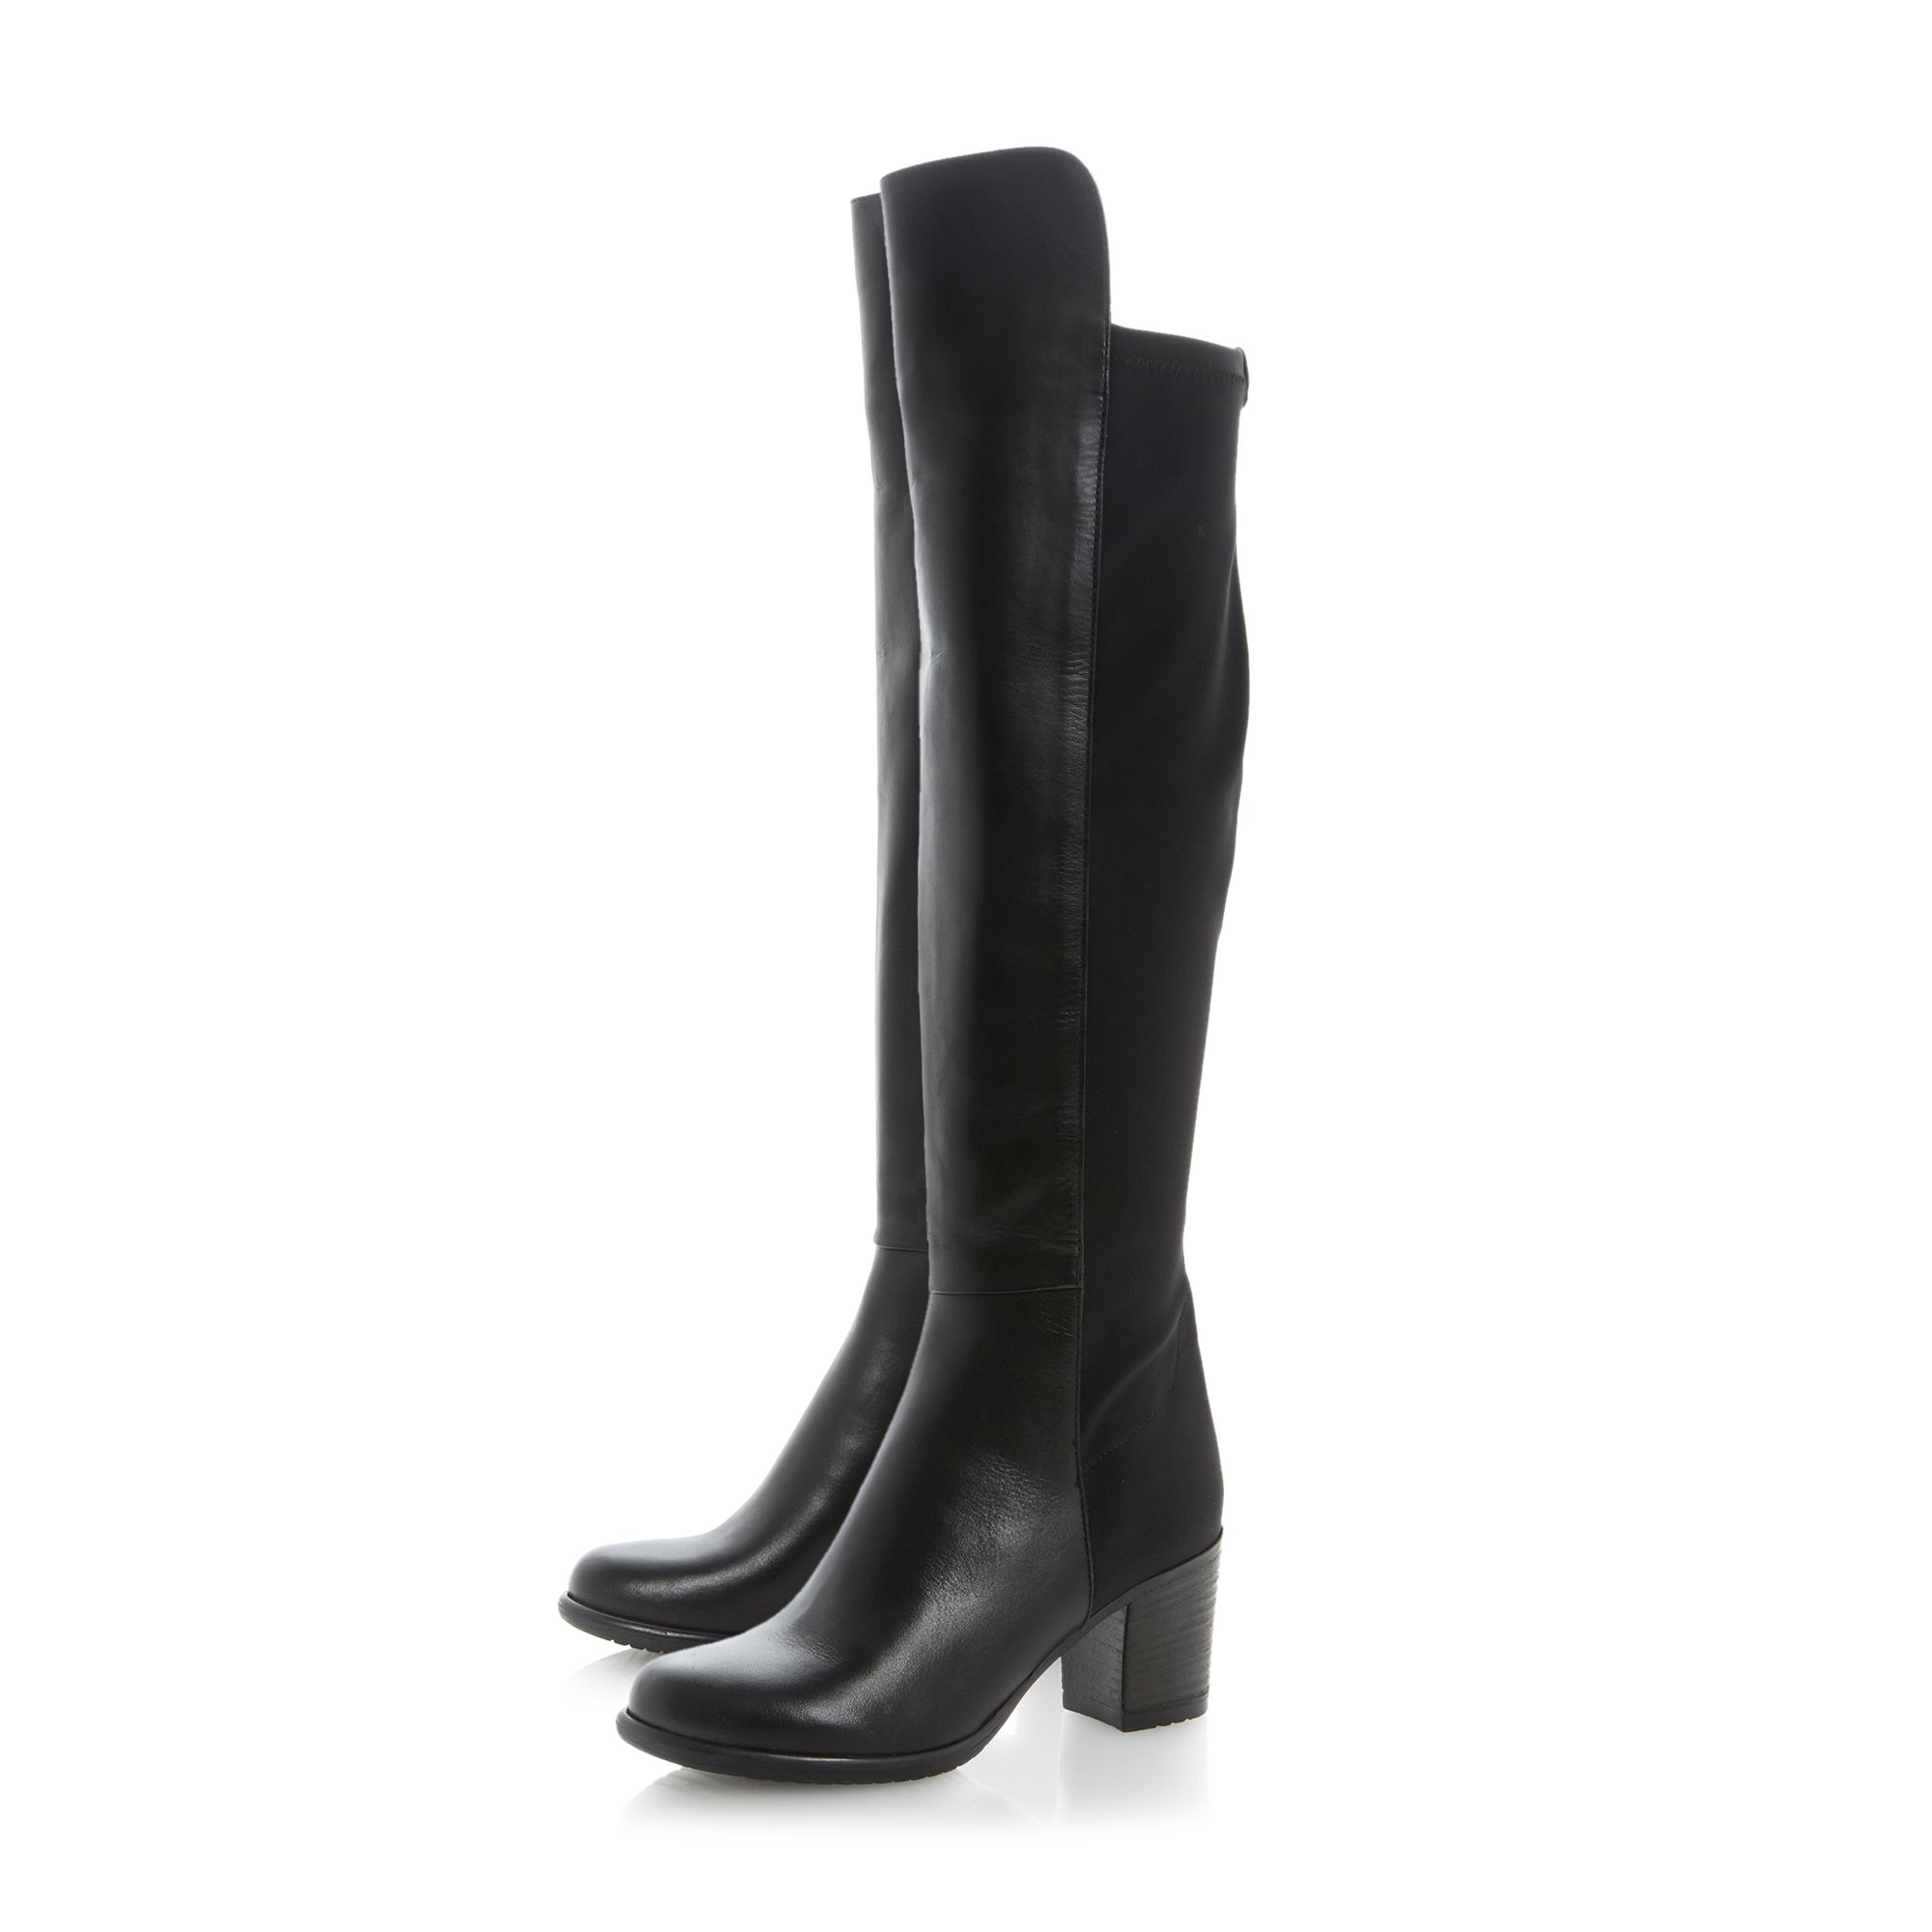 Trudy block heel stretch boots